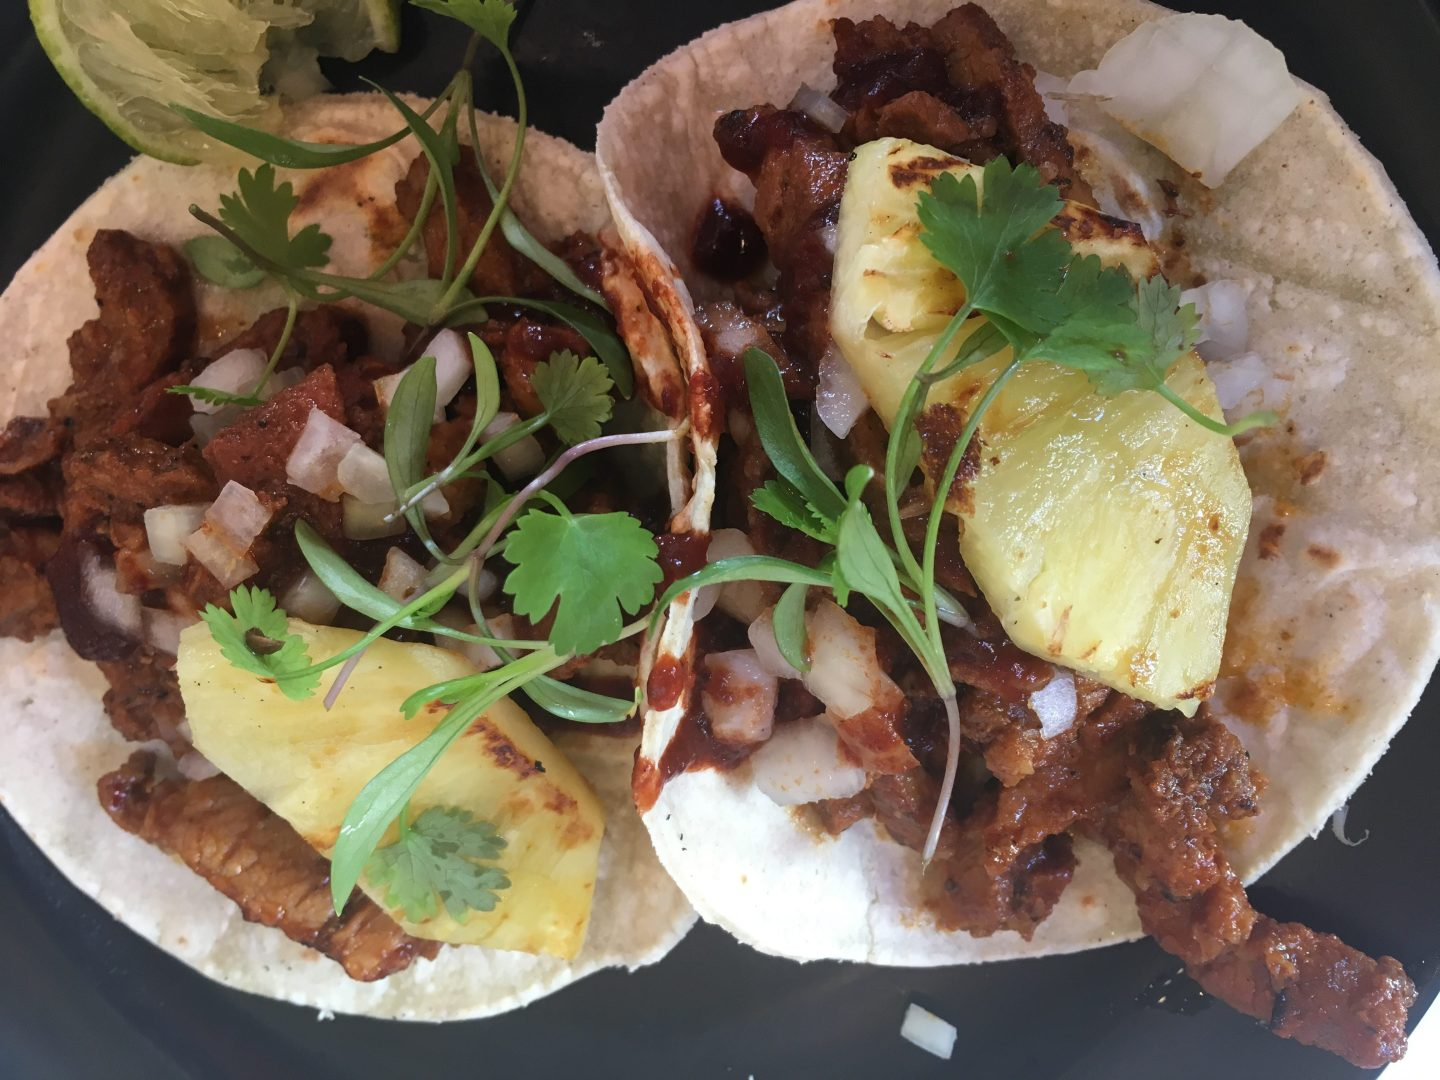 Tacos al pastor from Tacqueria in Notting Hill!